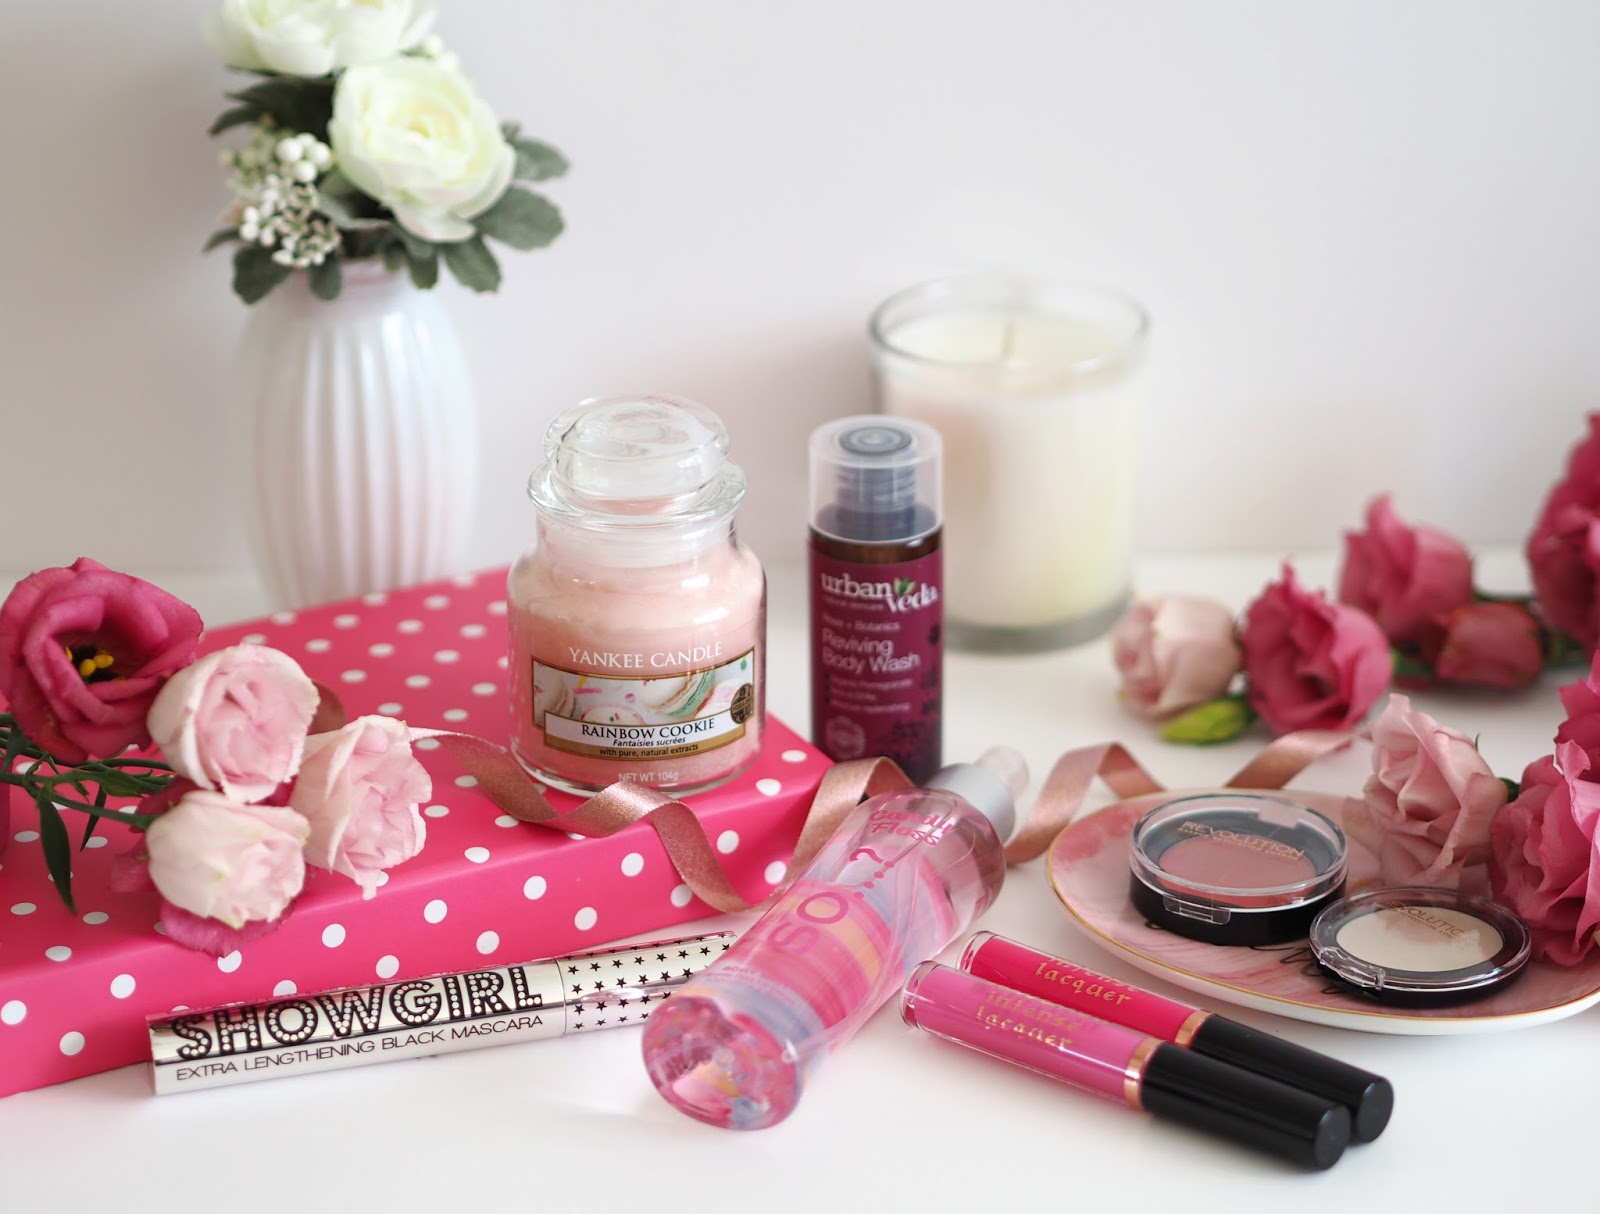 Giveaway: Celebrating 200 Posts!, Katie Kirk Loves, UK Blogger, Giveaway, Competition, Sweepstakes, Freebie Friday, Win It Wednesday, Enter To Win, Beauty Giveaway, Pink Giveaway, Make Up Giveaway, Prize, Blogger Giveaway, Blog Giveaway